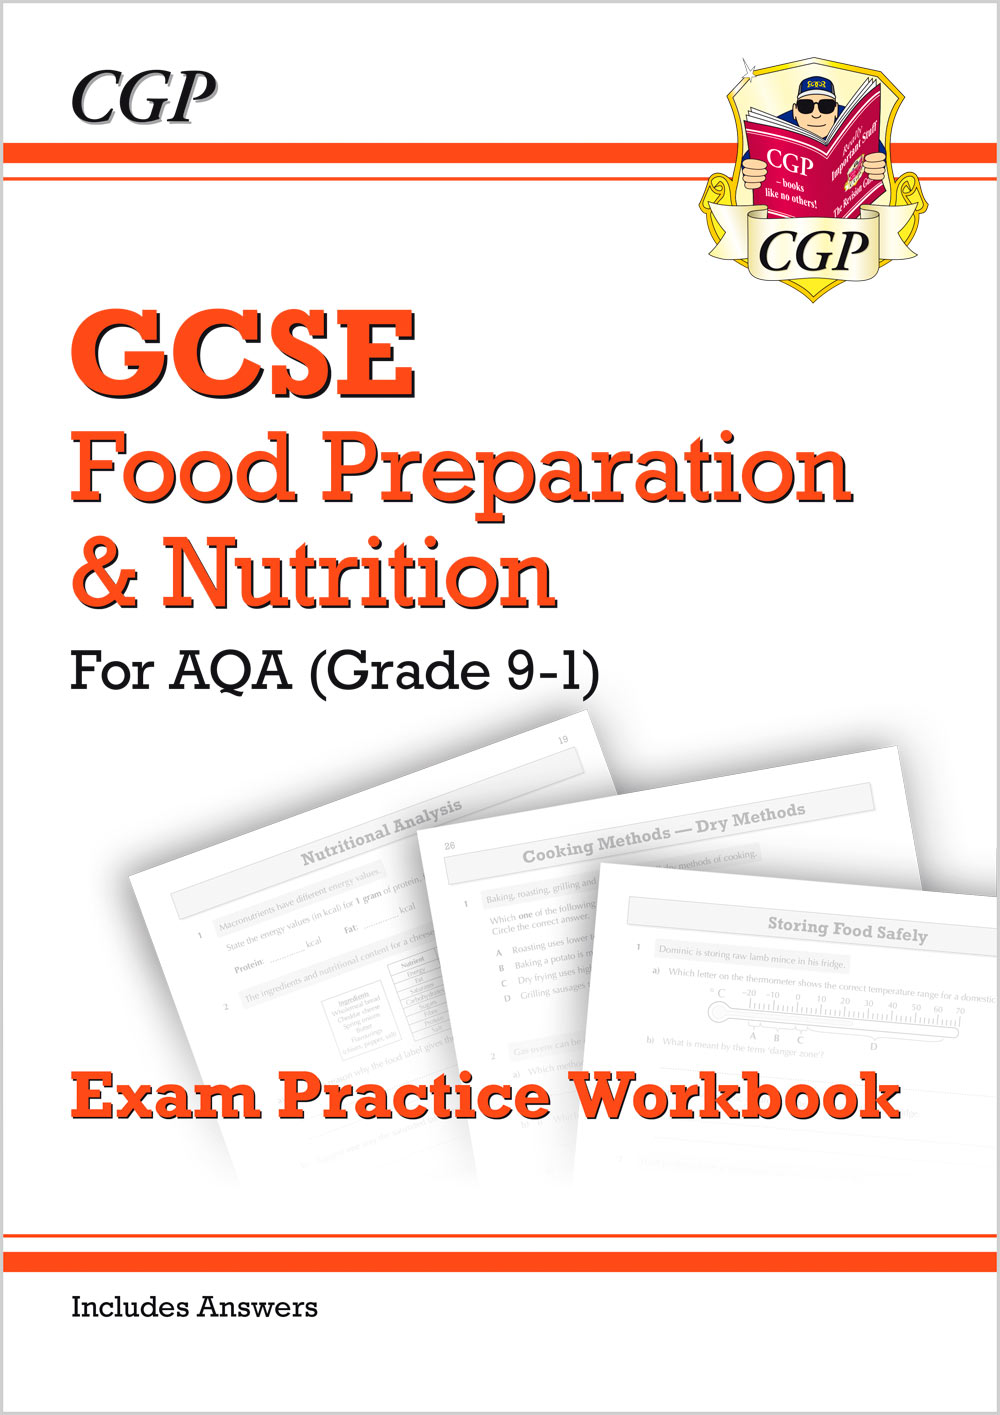 FNAQ41 - New Grade 9-1 GCSE Food Preparation & Nutrition - AQA Exam Practice Workbook (includes Answ